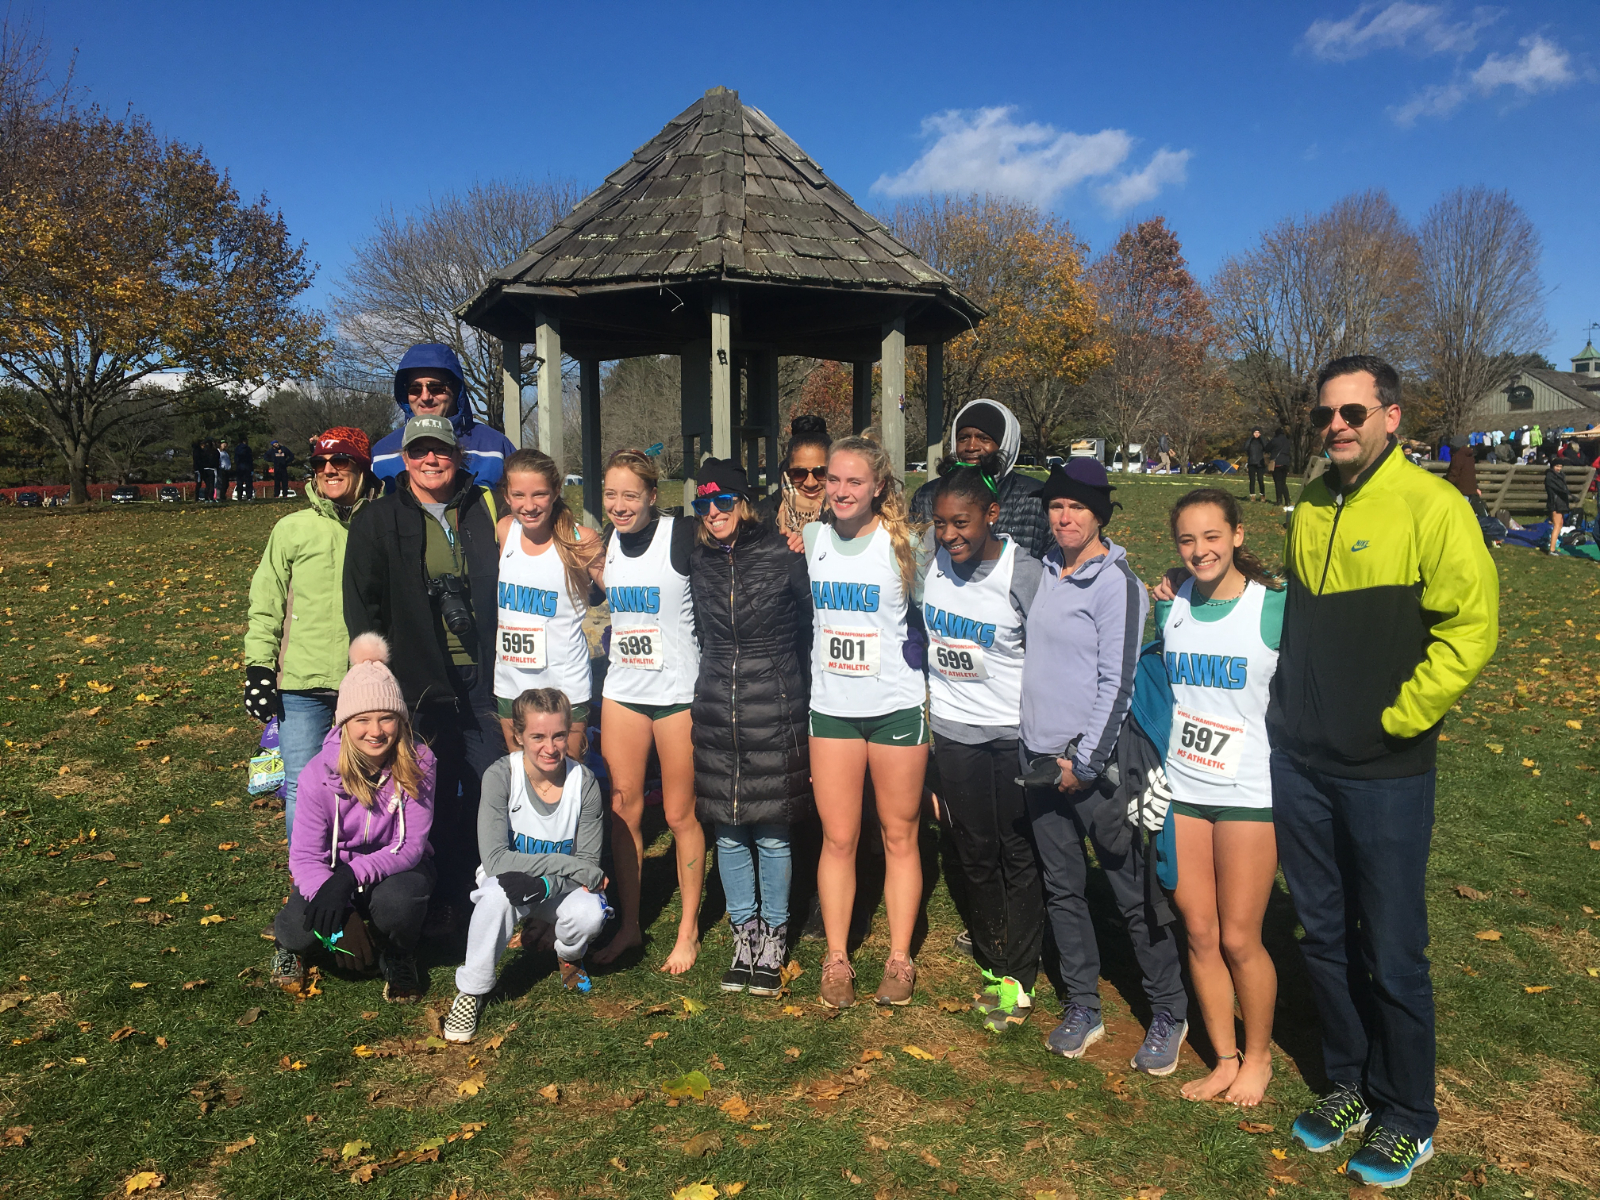 Crytser Finishes 8th to Lead Girls XC at States